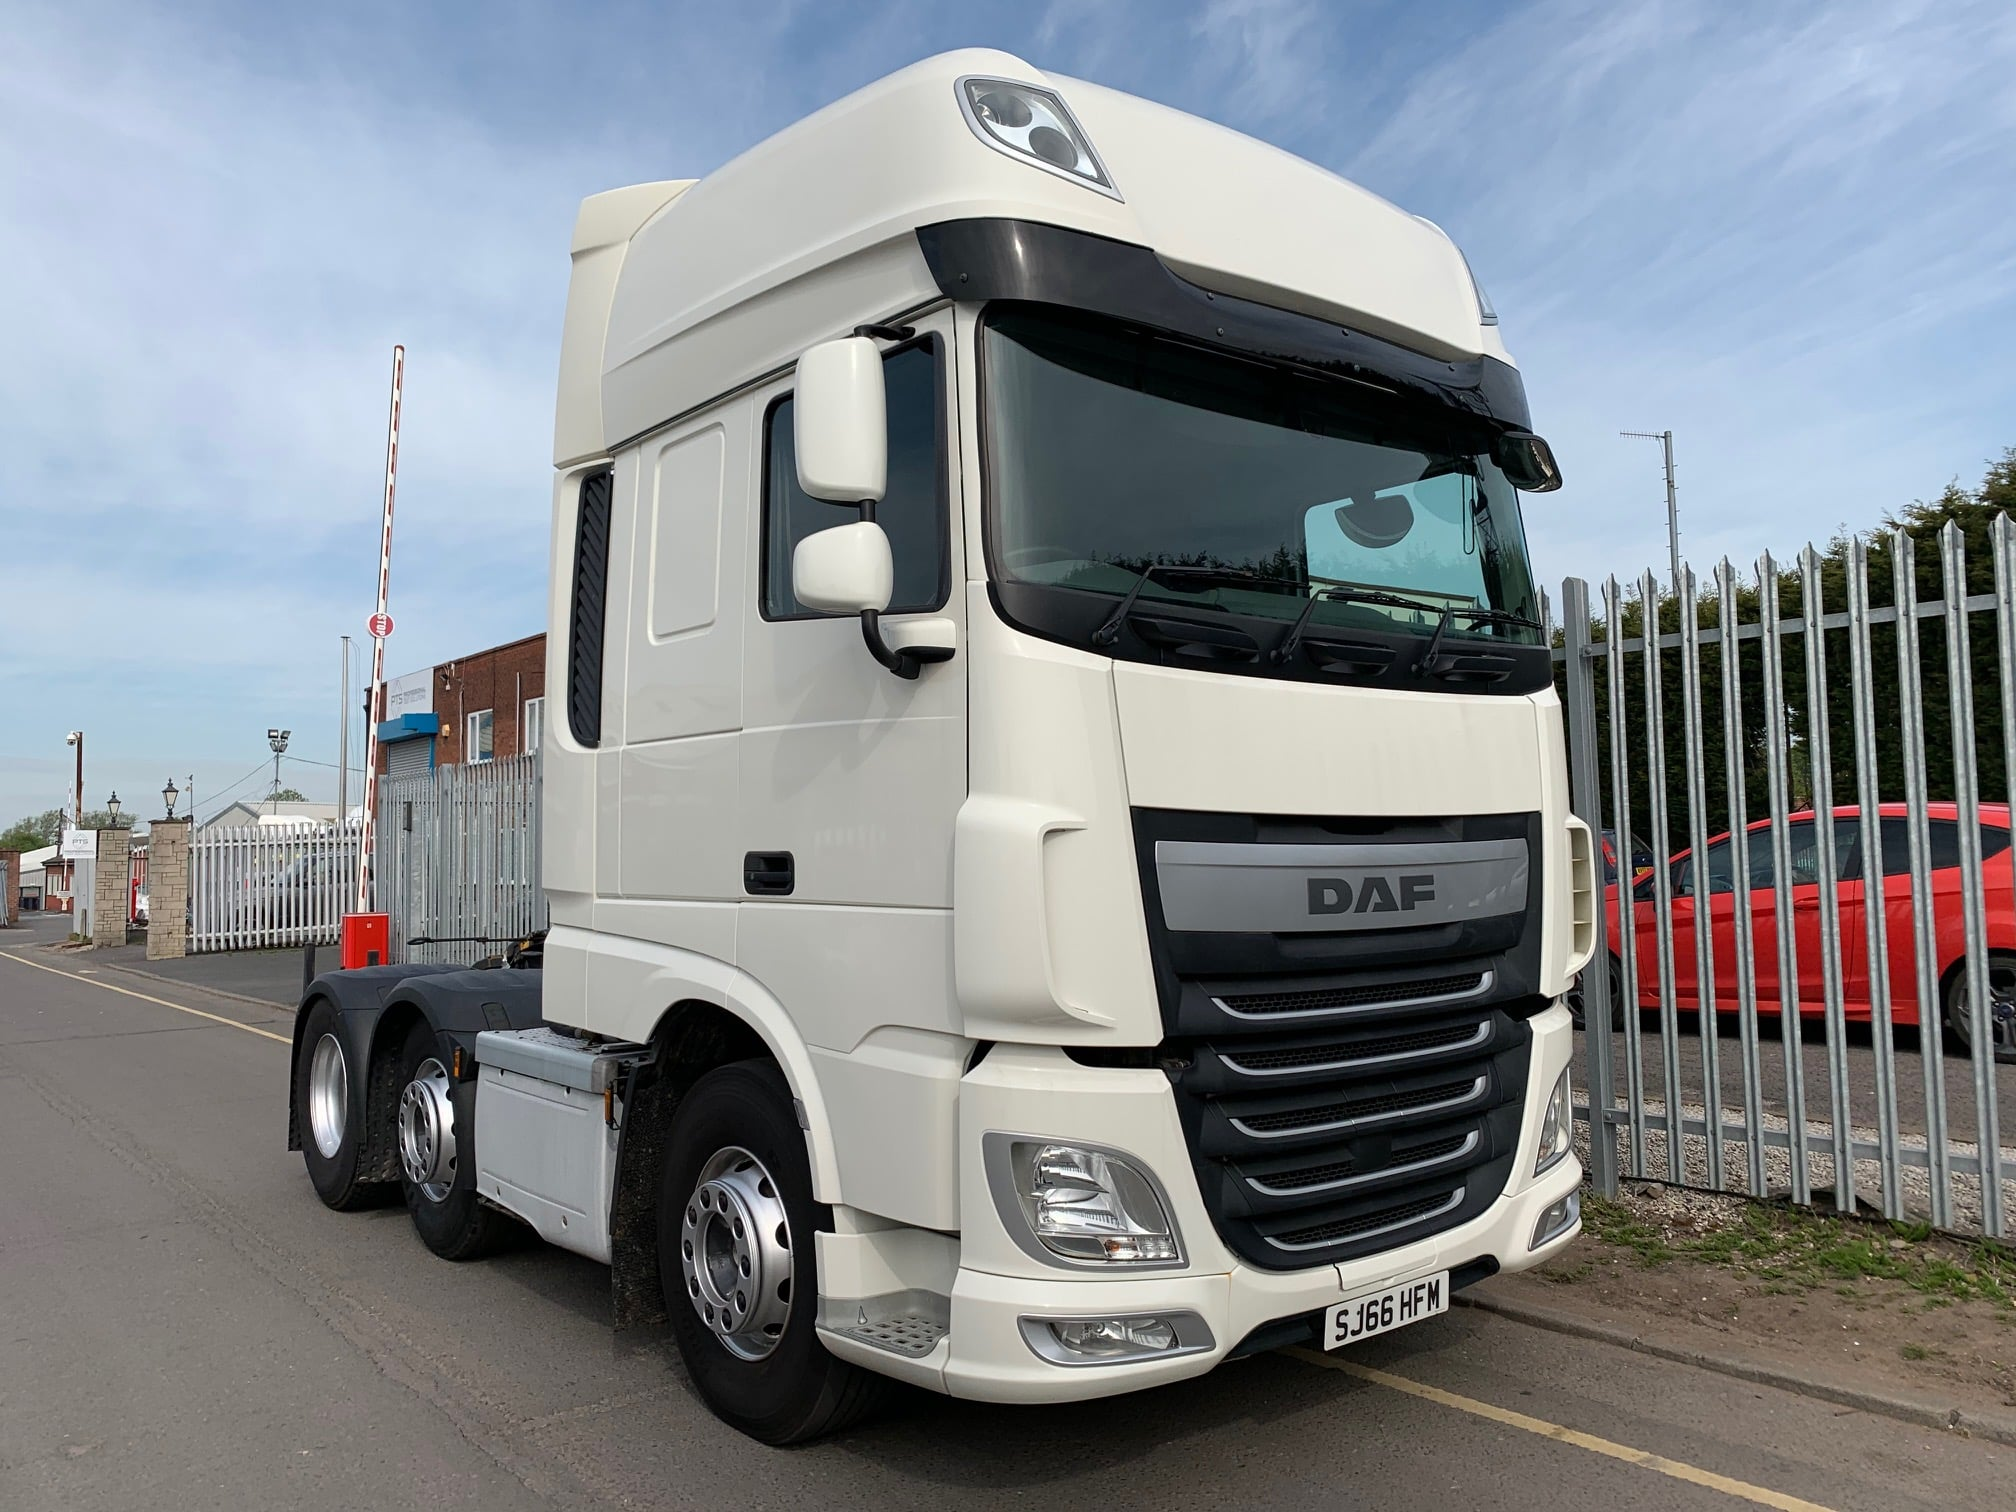 2016 (66) DAF XF. Euro 6, 510bhp, Superspace Twin Sleeper Cab, AS Tronic Automatic Gearbox, Steering Wheel Controls, Aluminium Catwalk Infill Panel, Fridge, Cruise Control, Mid-Lift Axle, Dual Liner Hydraulics for Tippers or Walking Floors. Choice & Warranty Available.